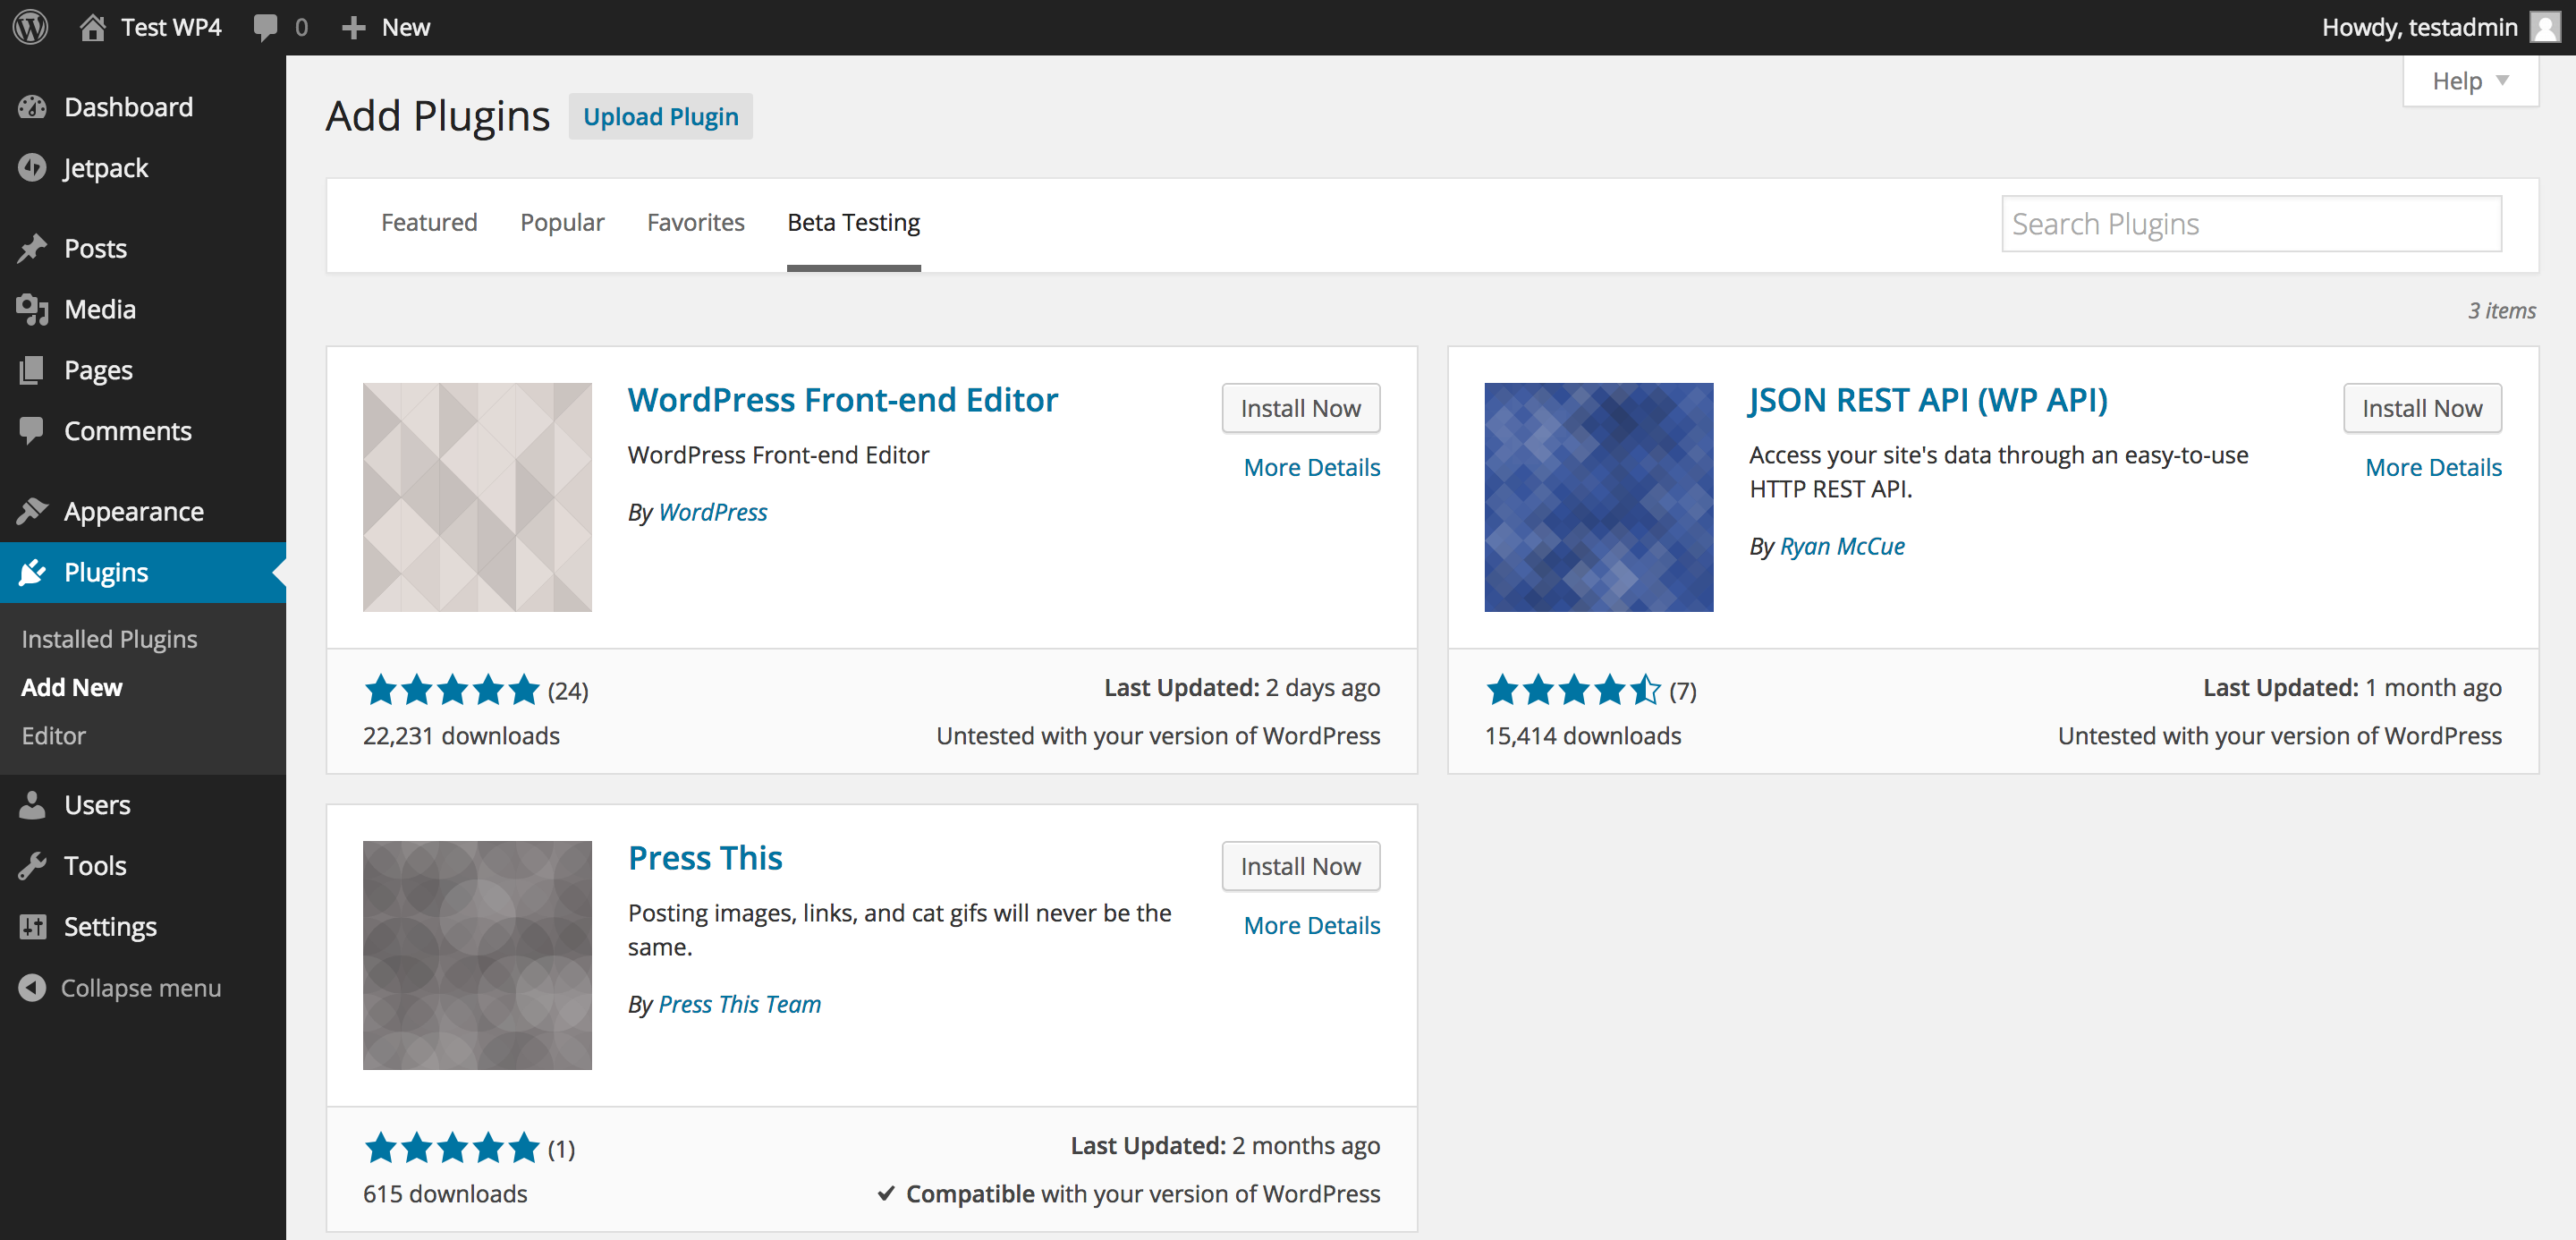 WordPress 4.0 Beta Testing Plugins